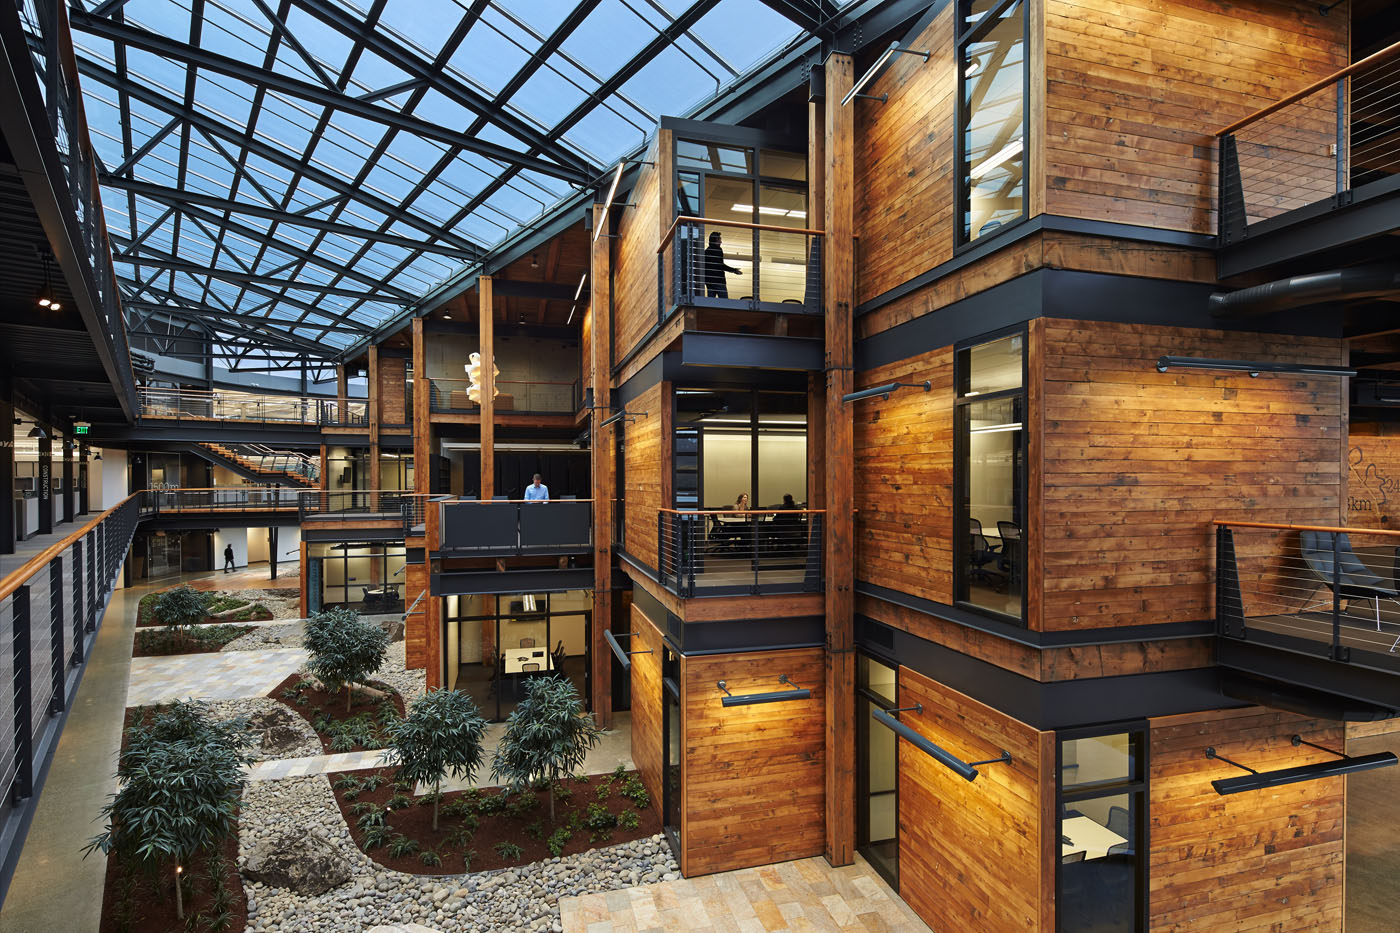 Top 10 green buildings environmental watch for Best material to build a house